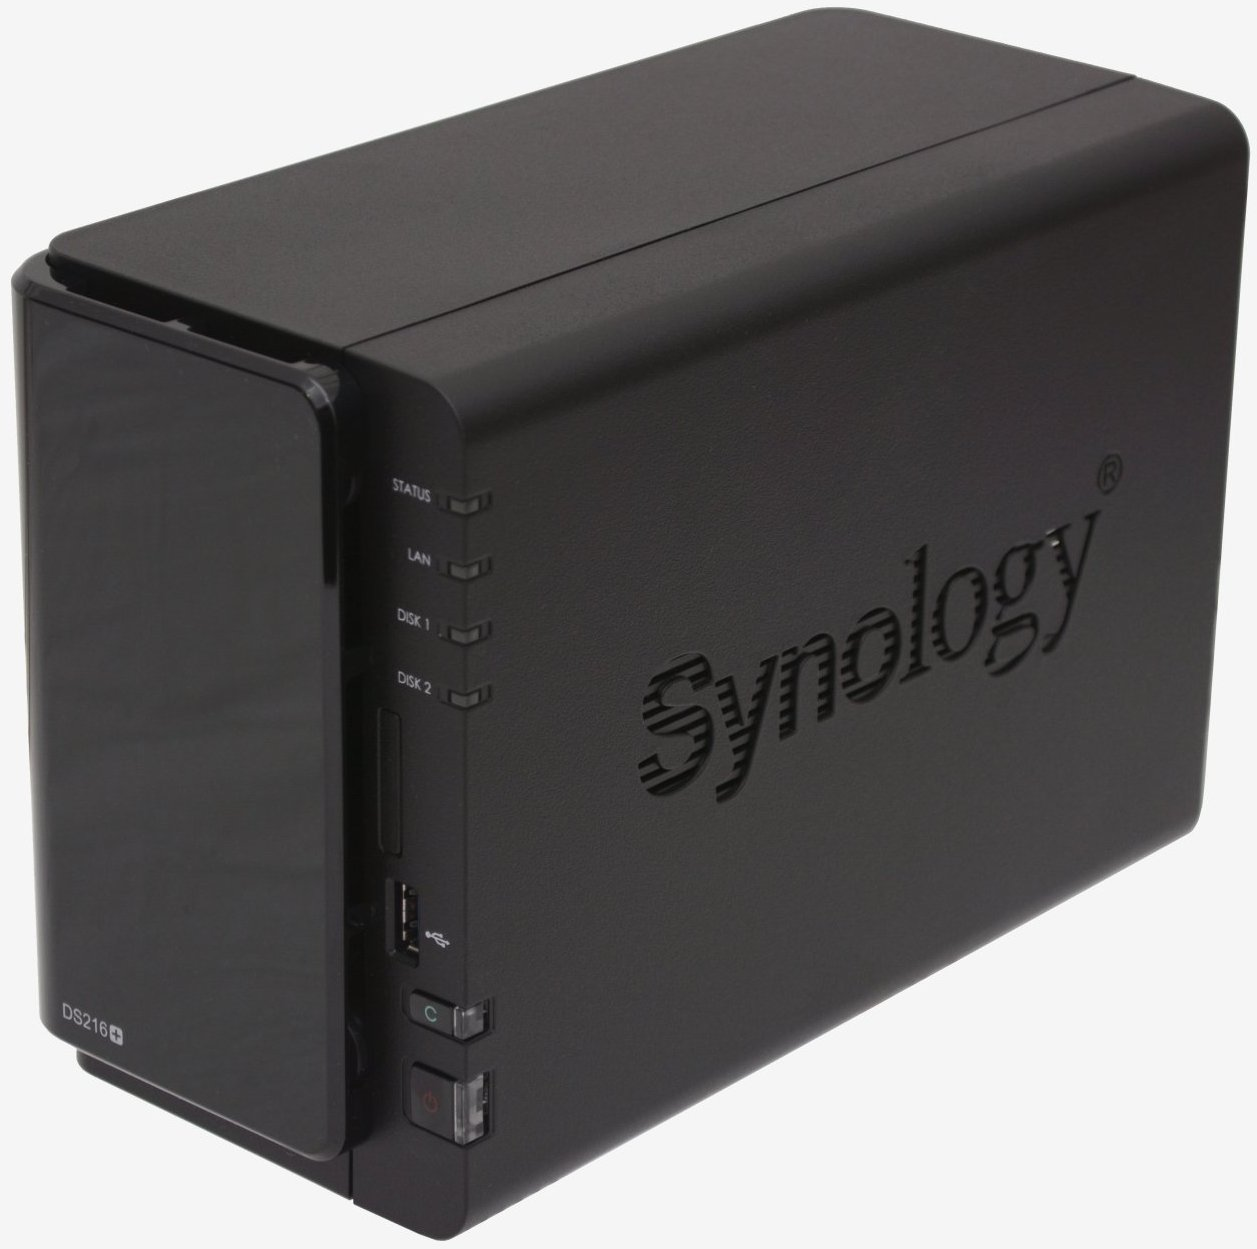 Synology DiskStation DS216+ NAS Review - TechSpot